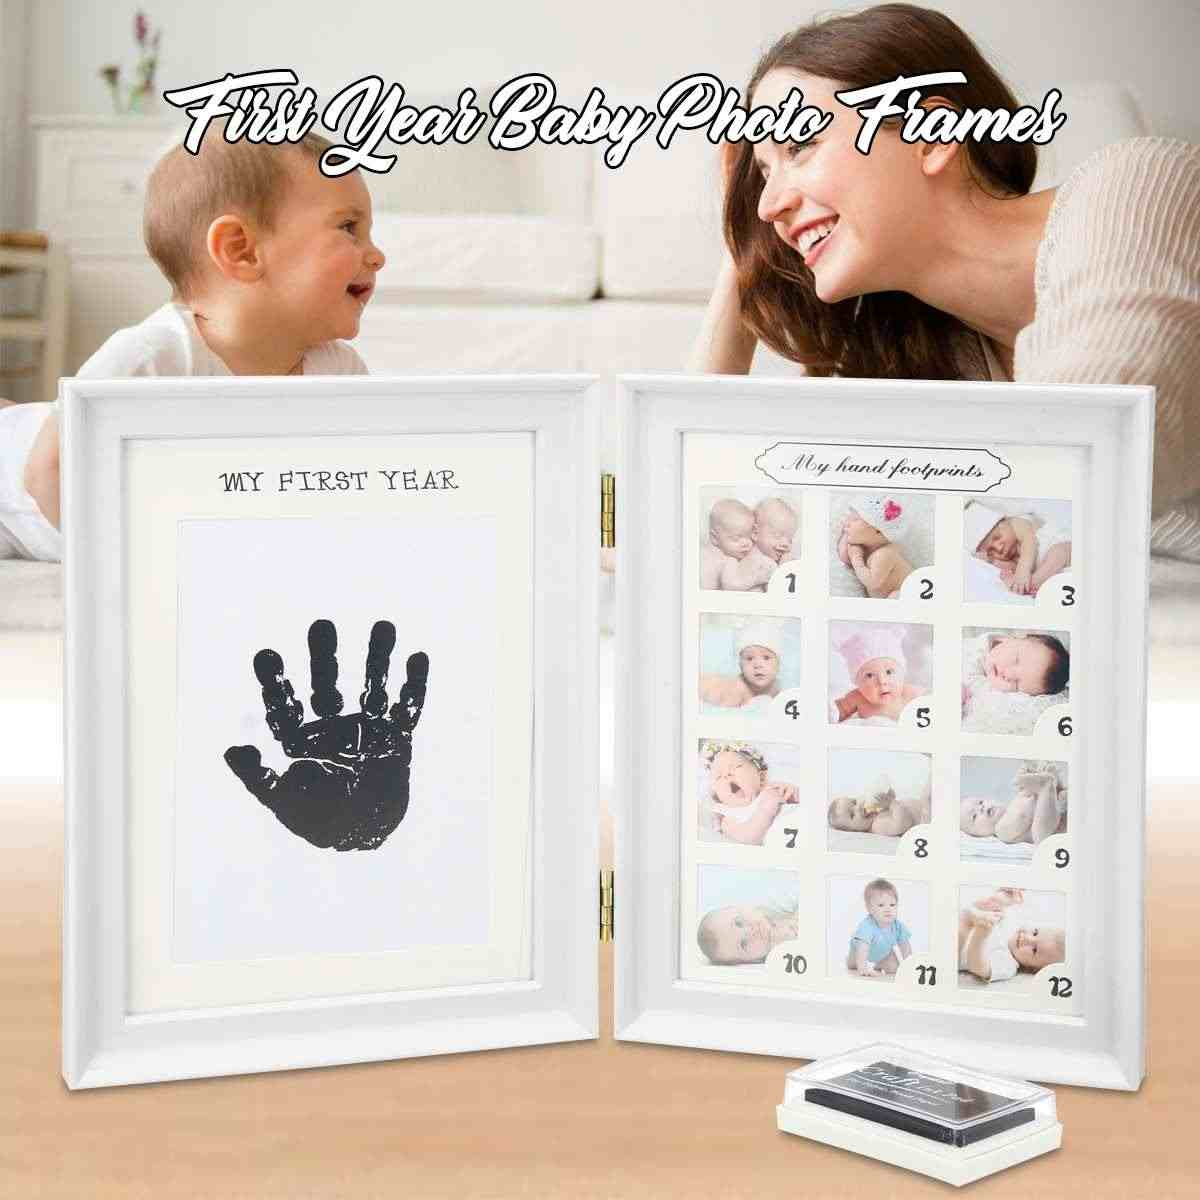 My First Year Baby Gift Kids Birthday Gift Home Family Decoration Ornaments 12 Months Picture Photo Frame with Craft ink Pad